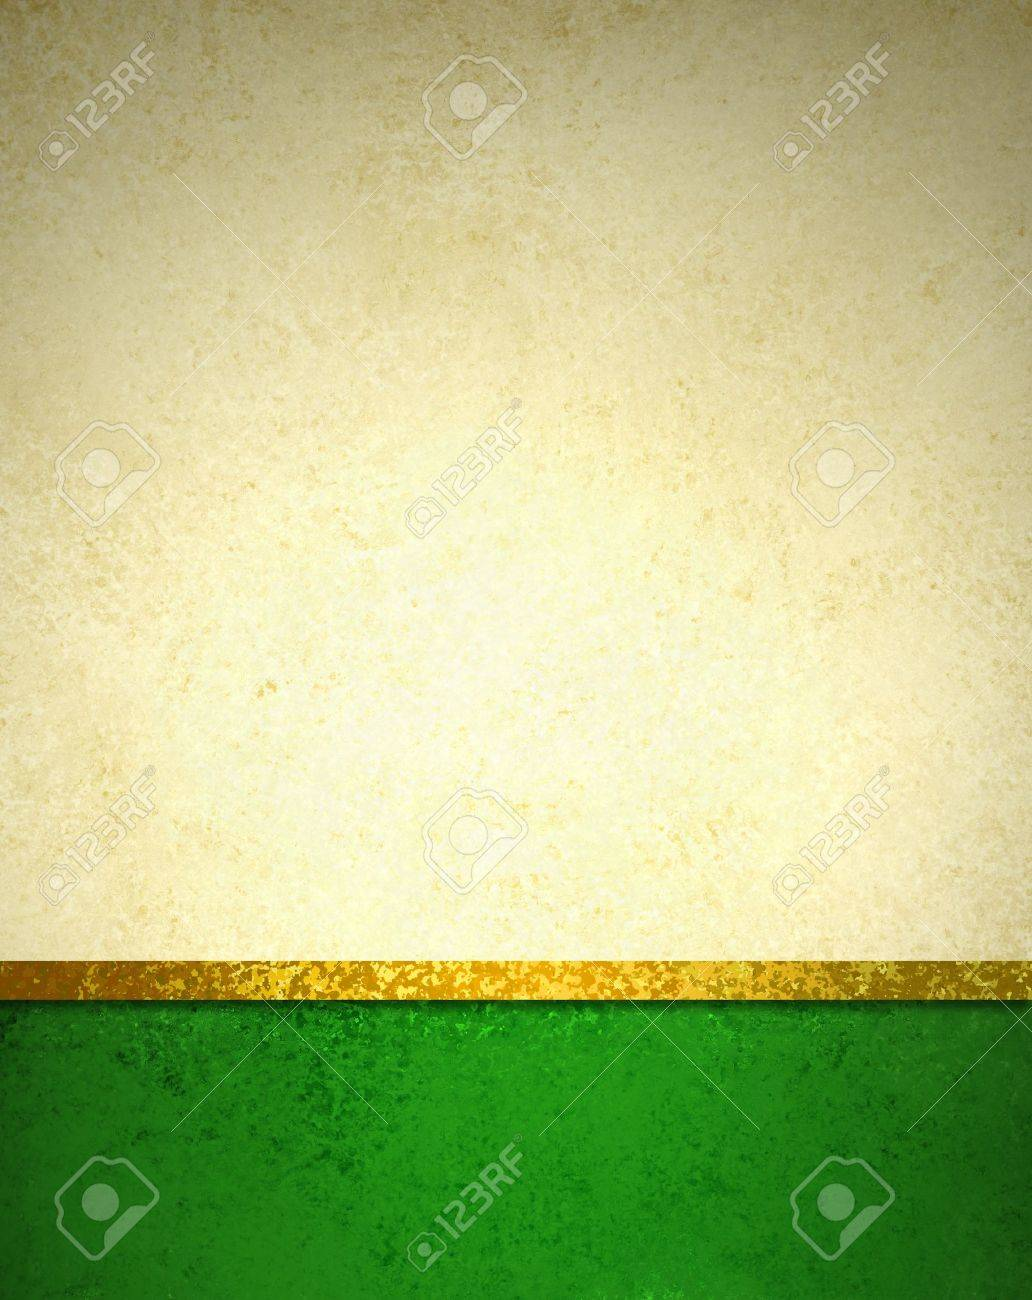 abstract gold background with dark green footer and gold ribbon trim border, beautiful template background layout, luxury elegant gold paper with vintage grunge background texture design - 43272882